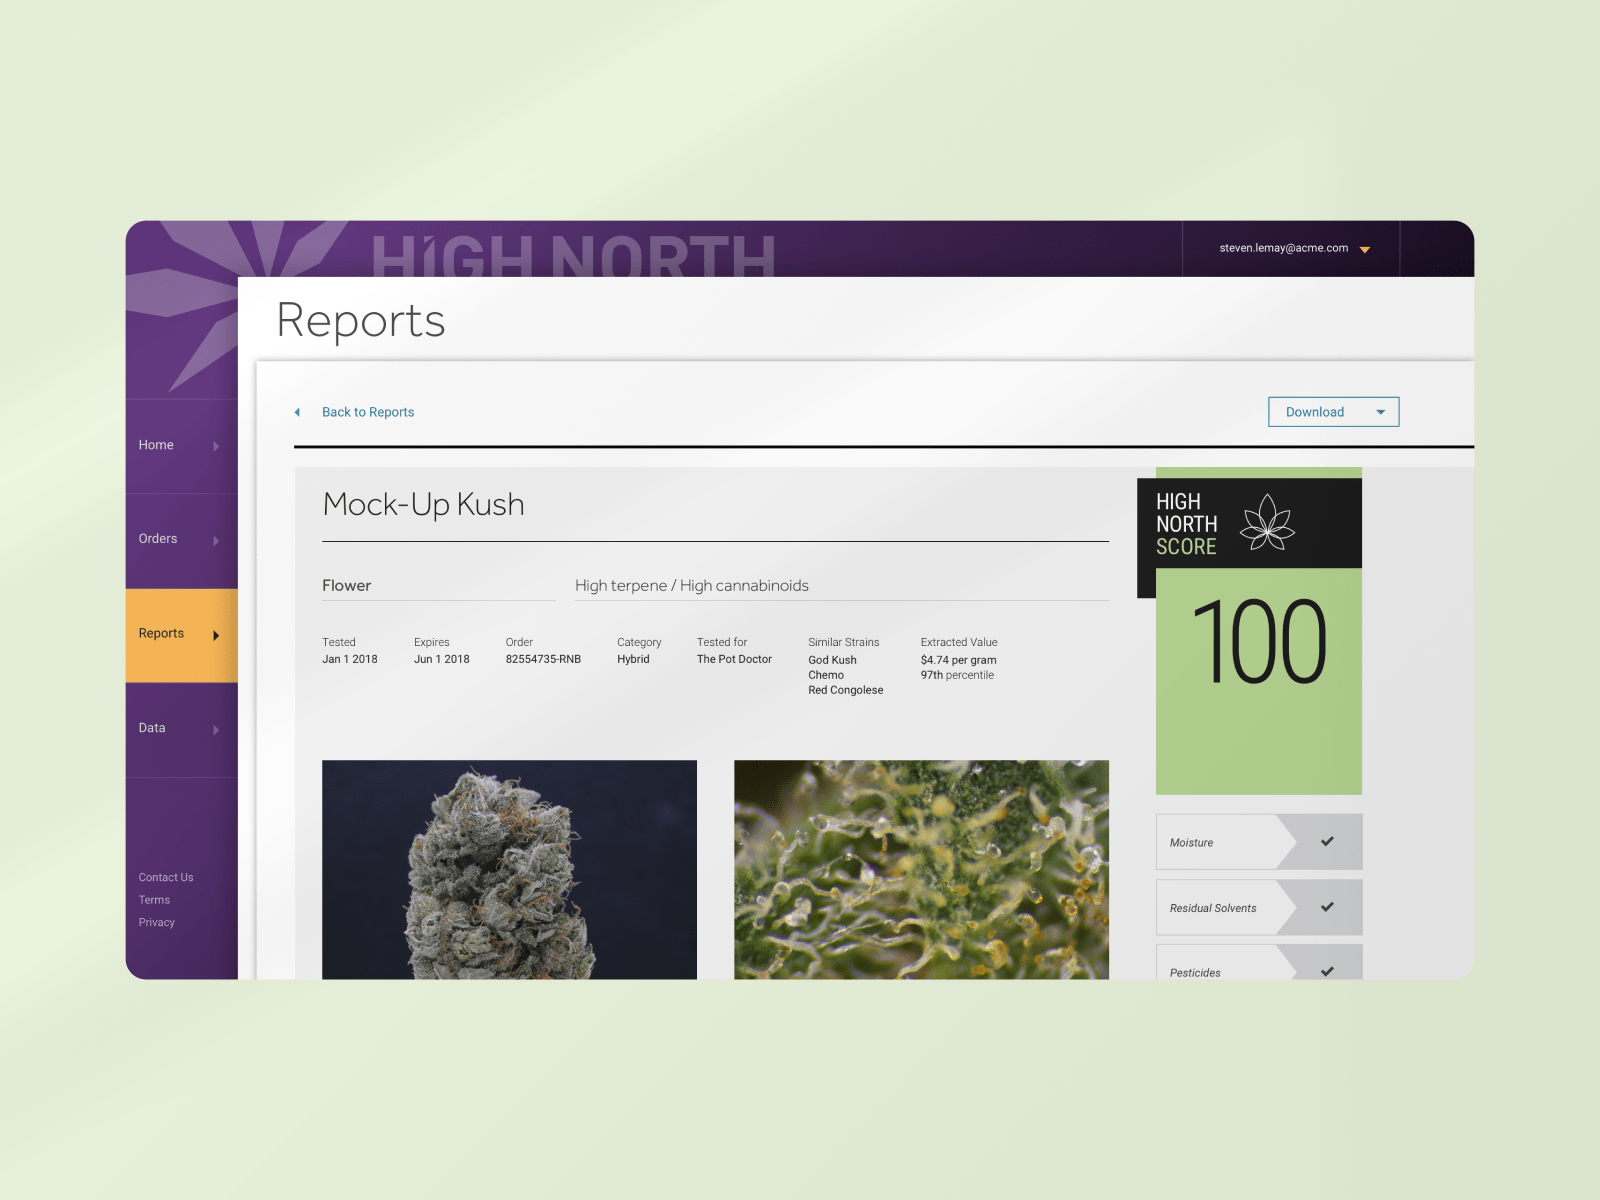 High North sample report webpage